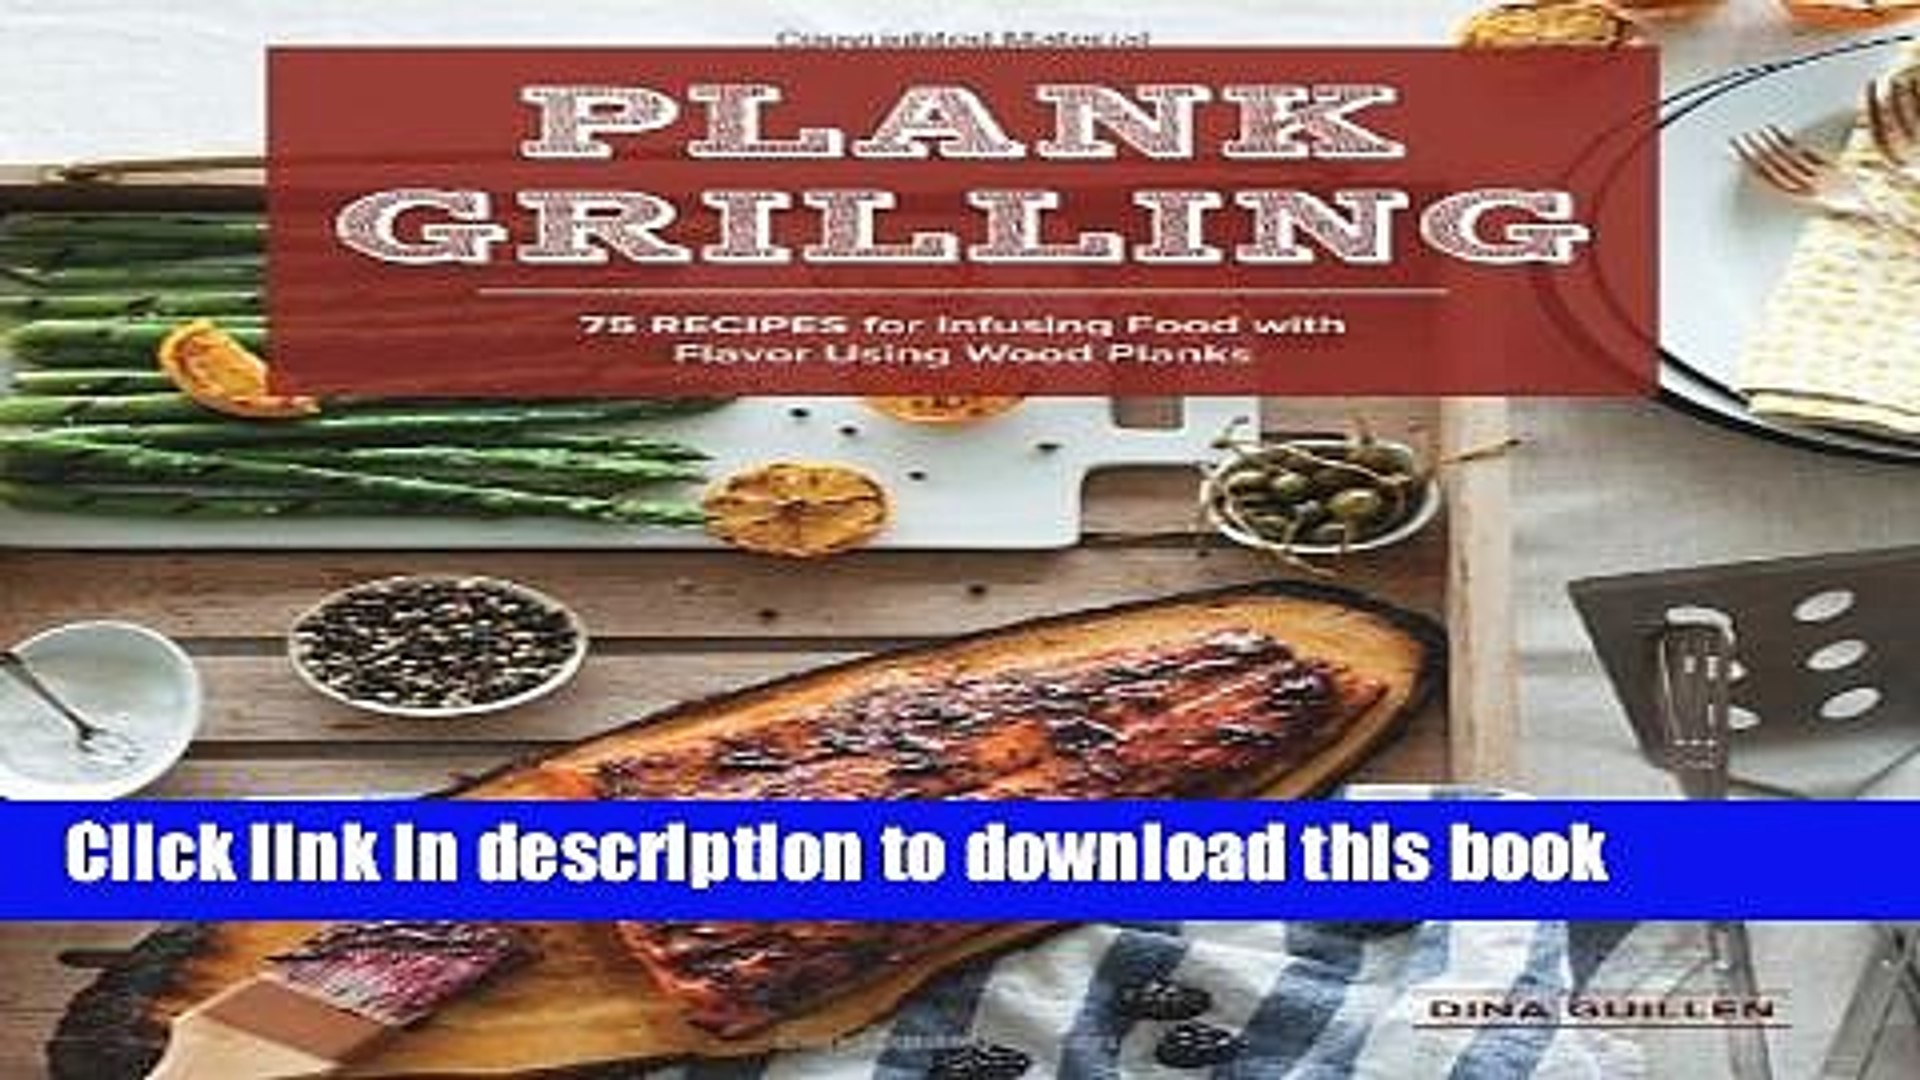 Books Plank Grilling: 75 Recipes for Infusing Food with Flavor Using Wood Planks Full Online